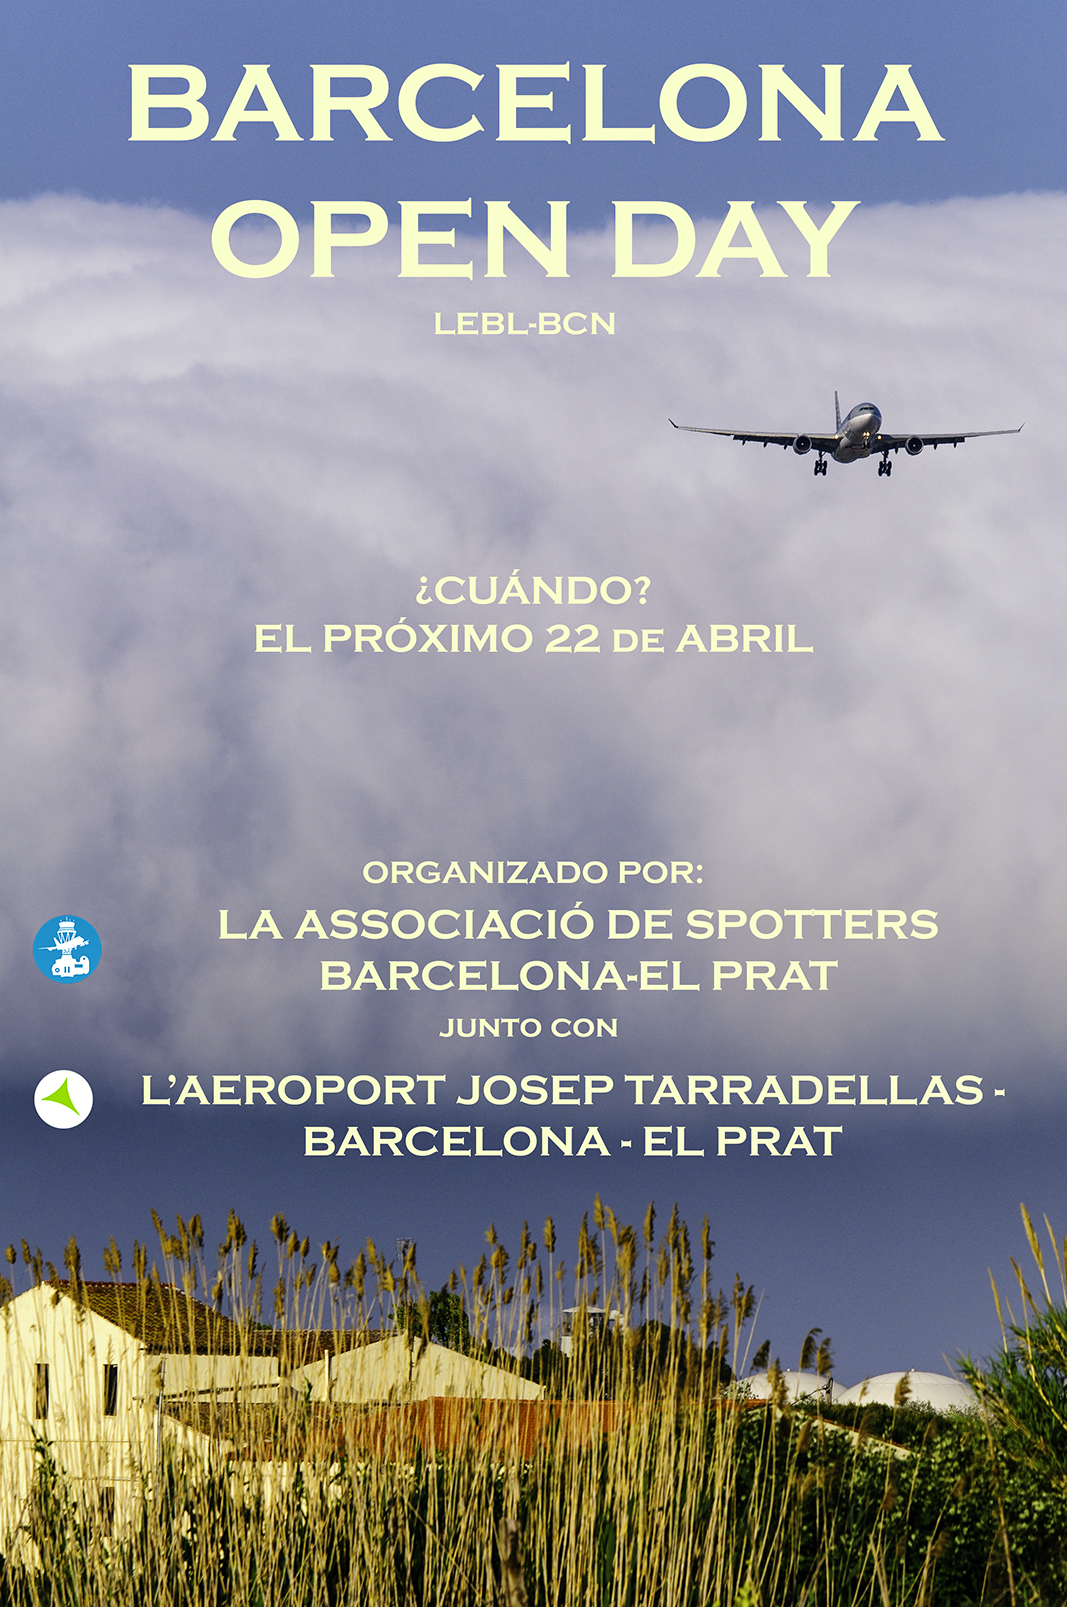 Barcelona Open Day 2020 - 22 de Abril